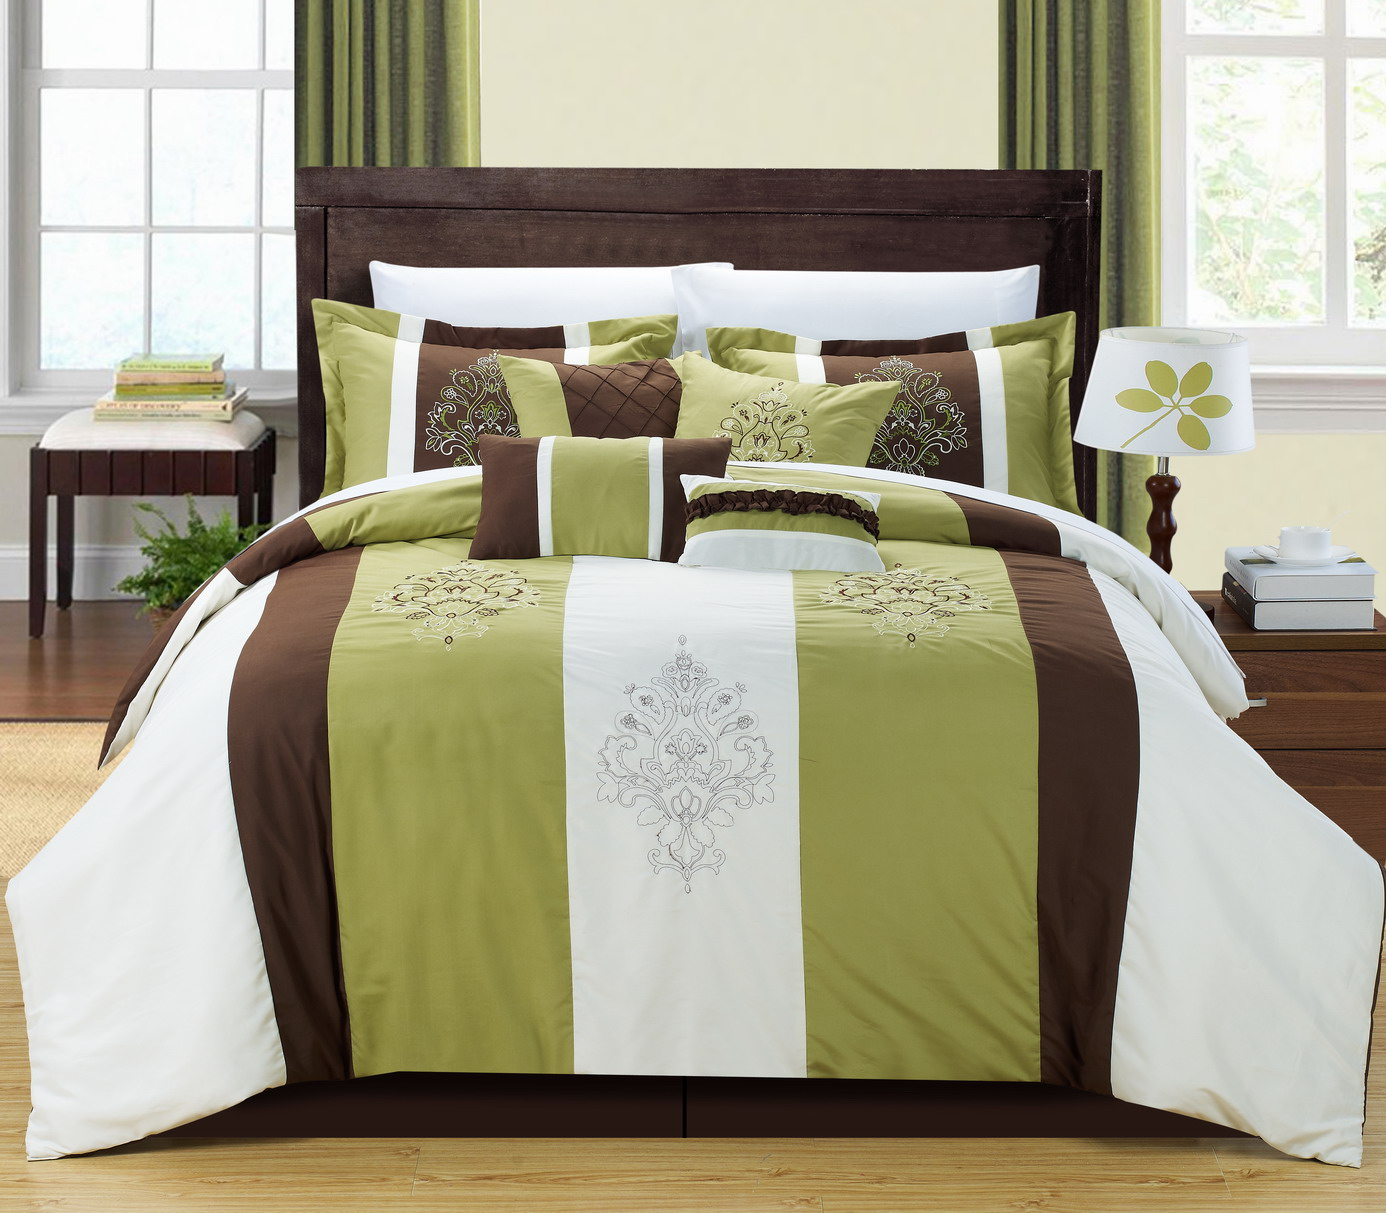 Chic Home Vicky 12 pc Embroidered Comforter Set